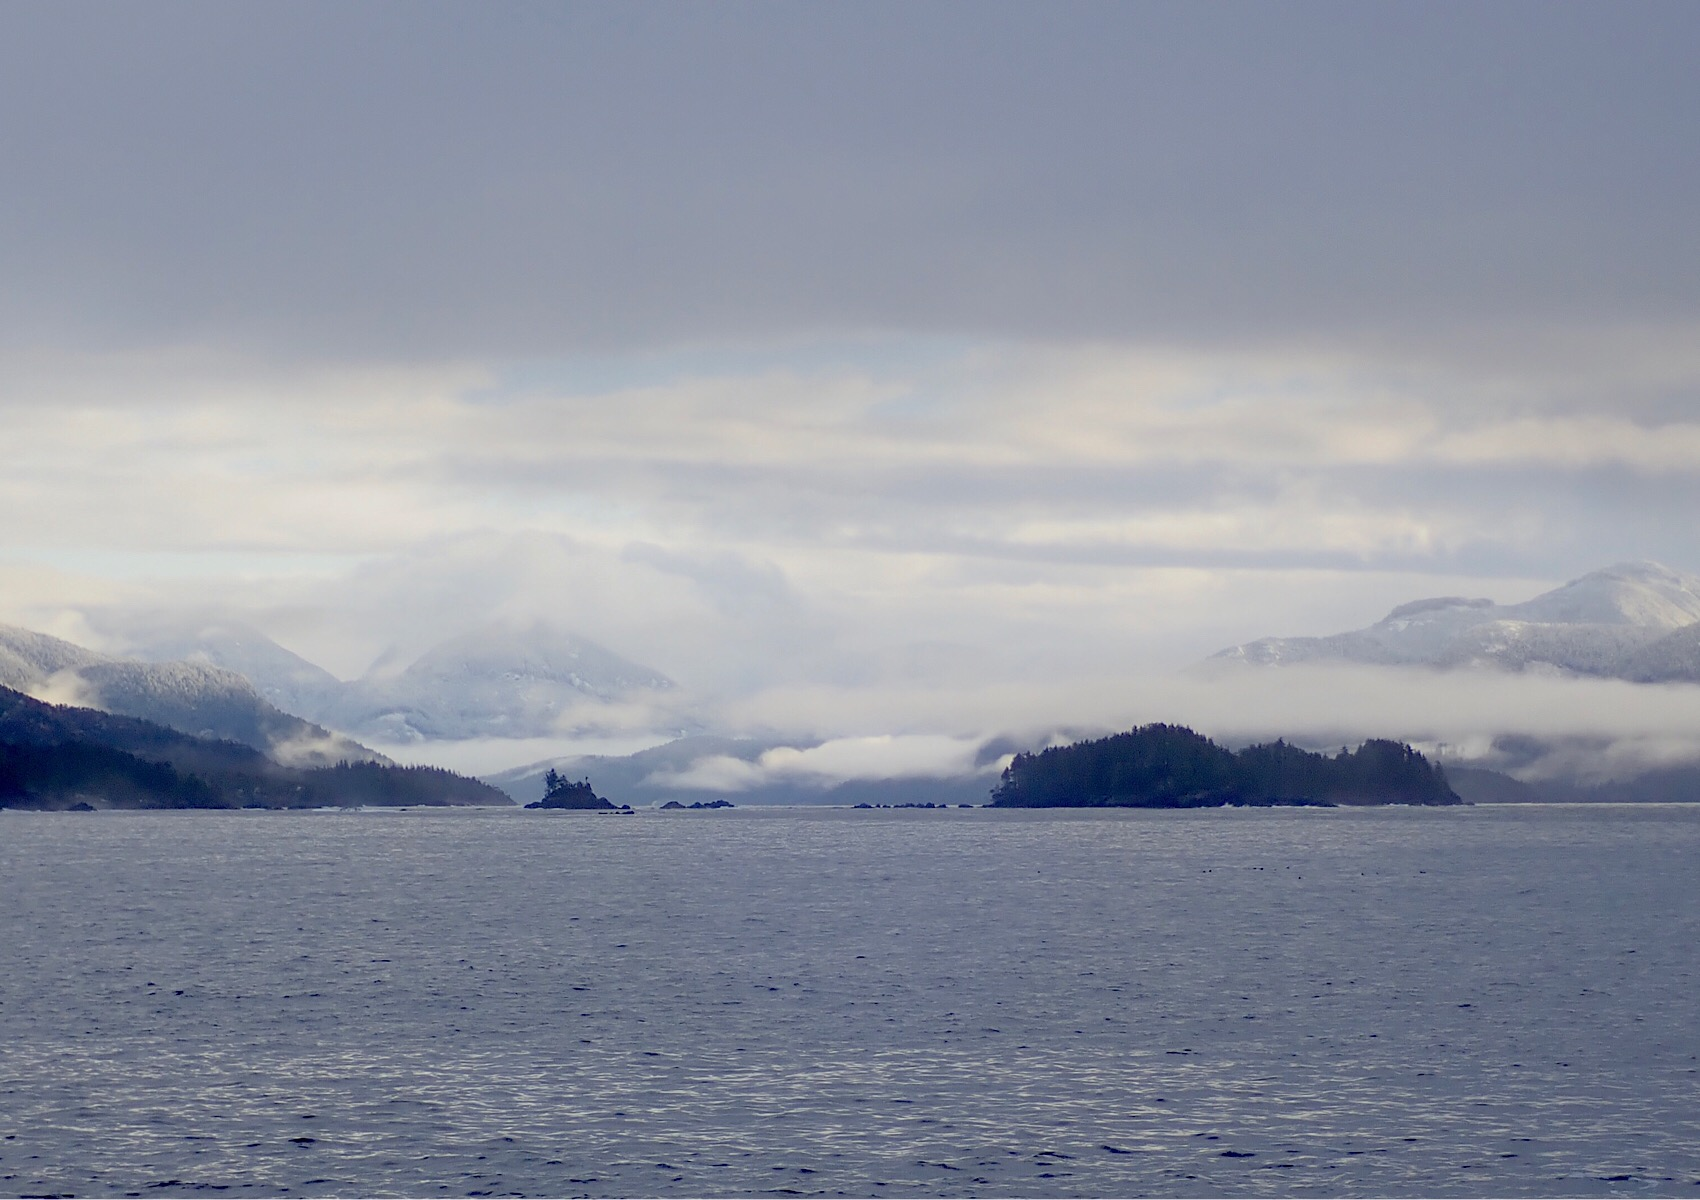 Looking back up the Esperanza Inlet from Catala Island.